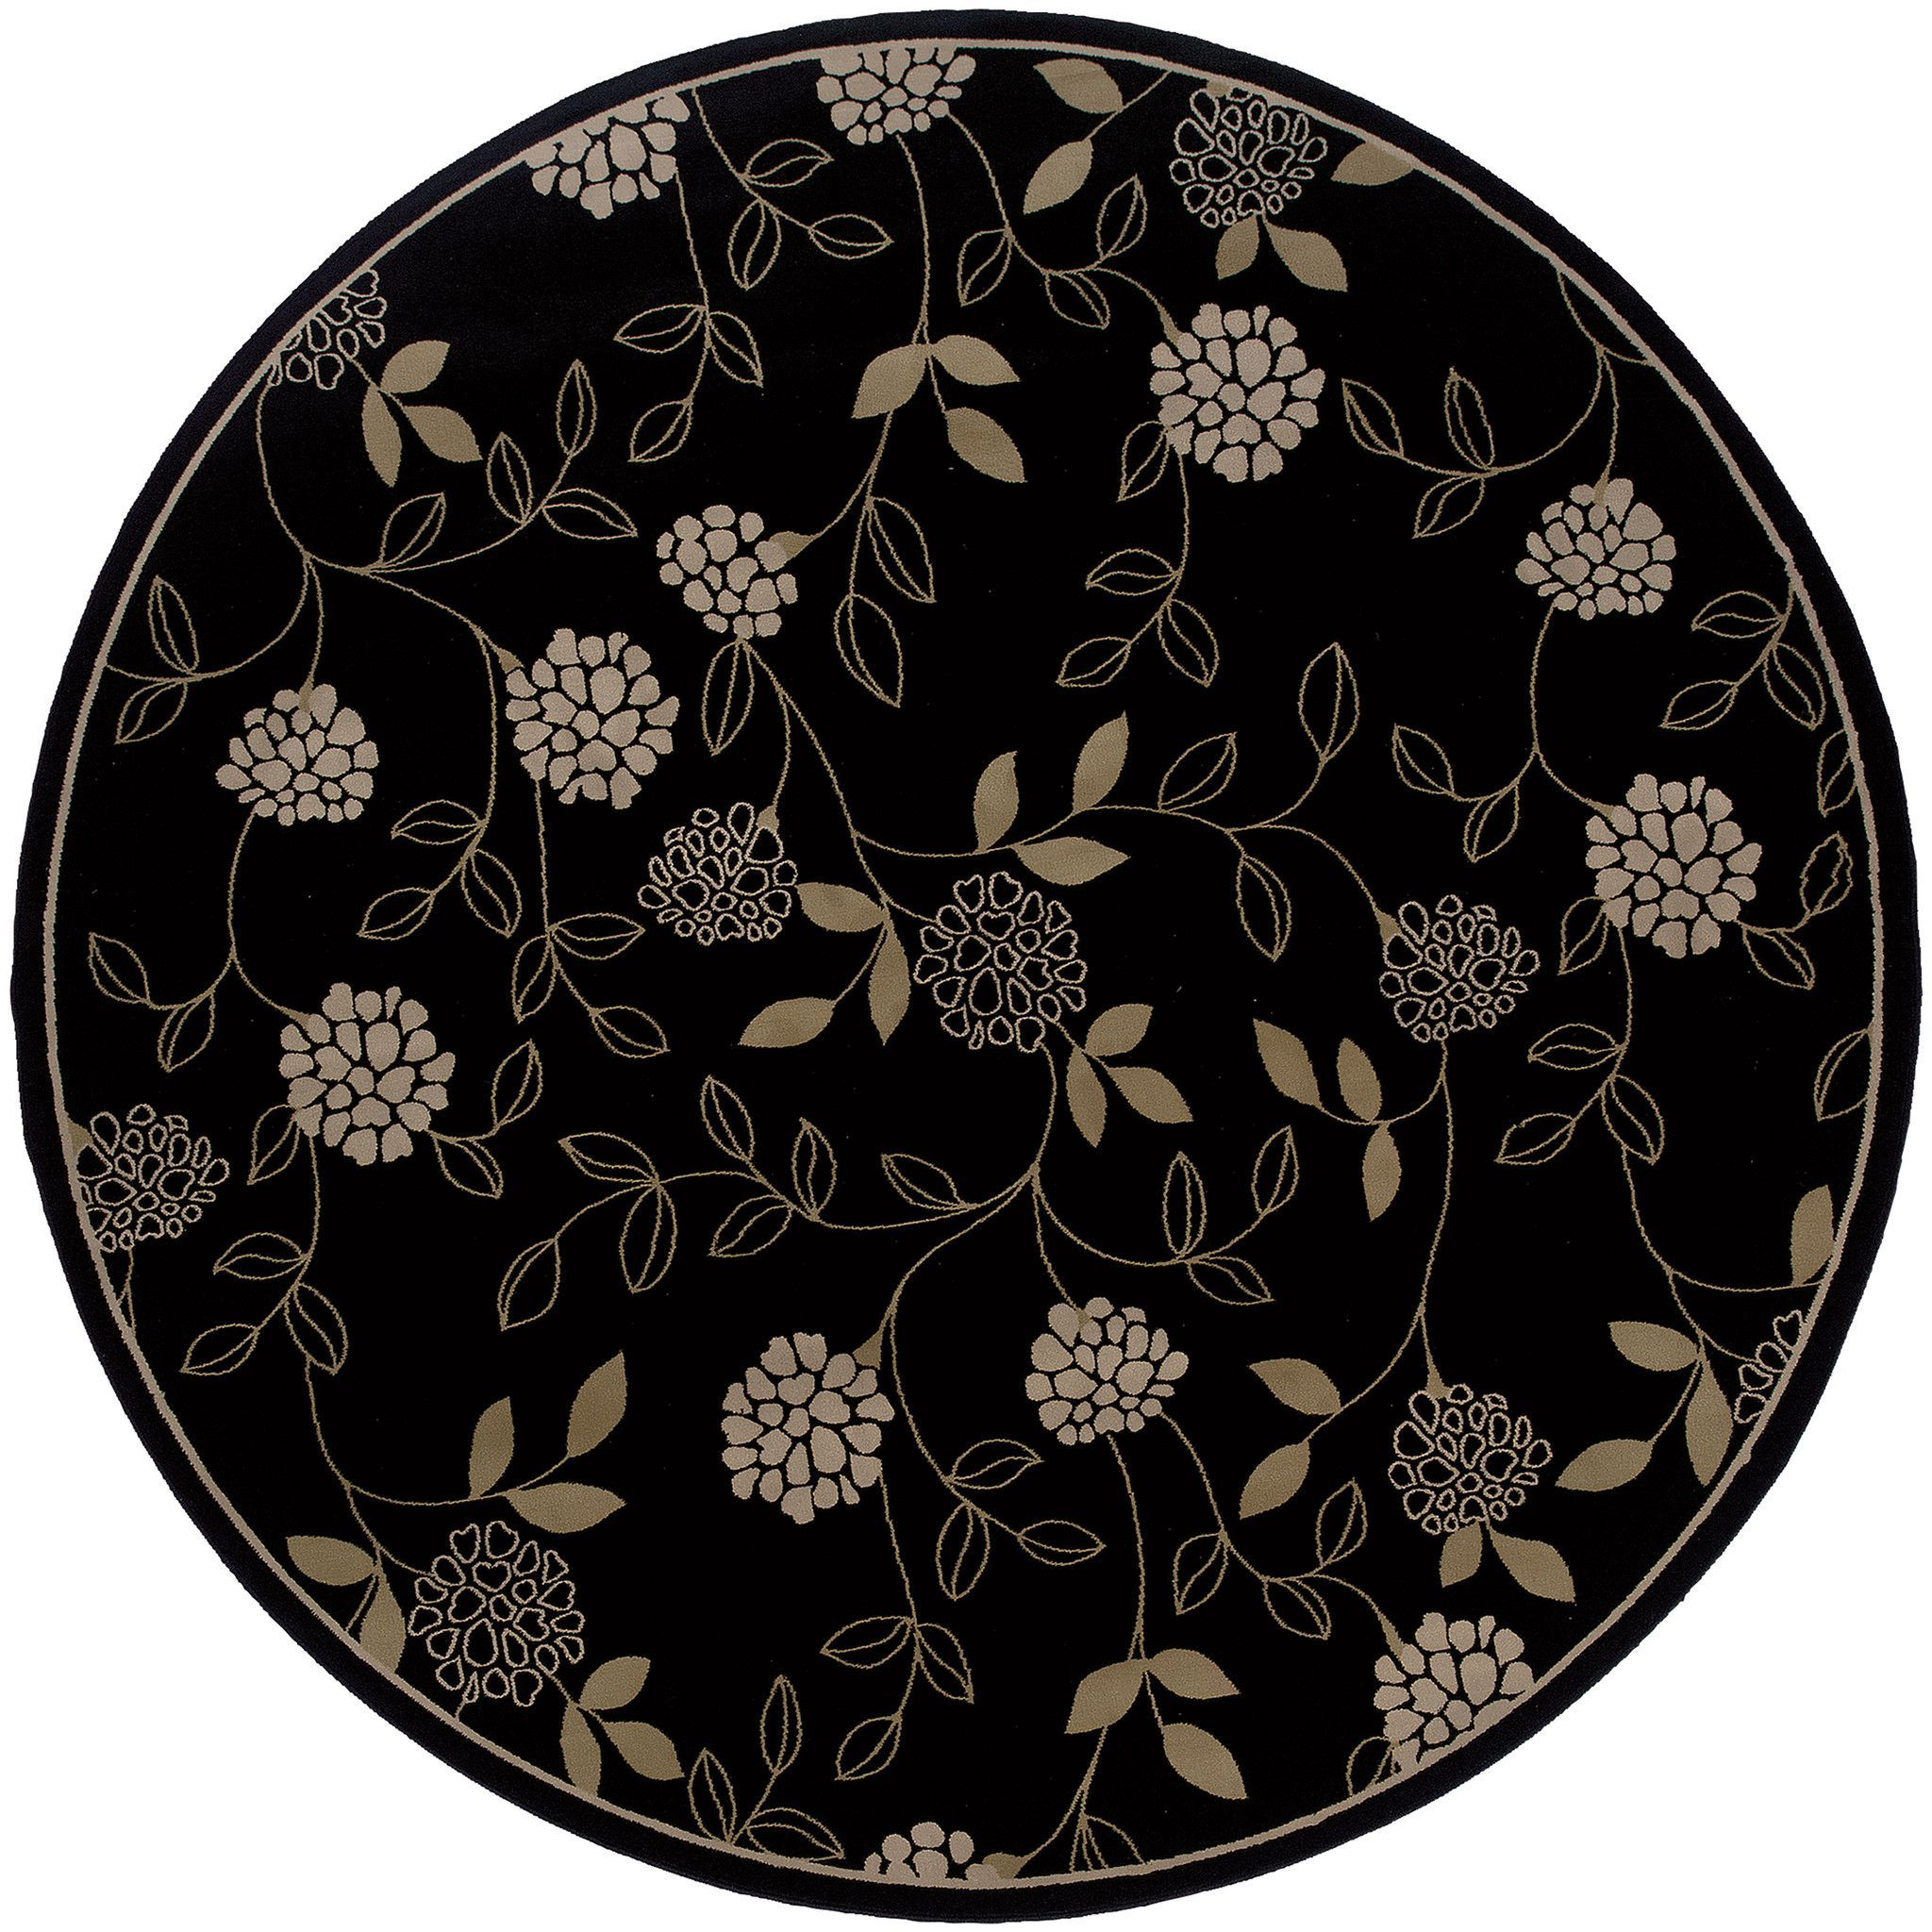 Ariana 2285G Floral Black-Green Area Rug (8' Round)